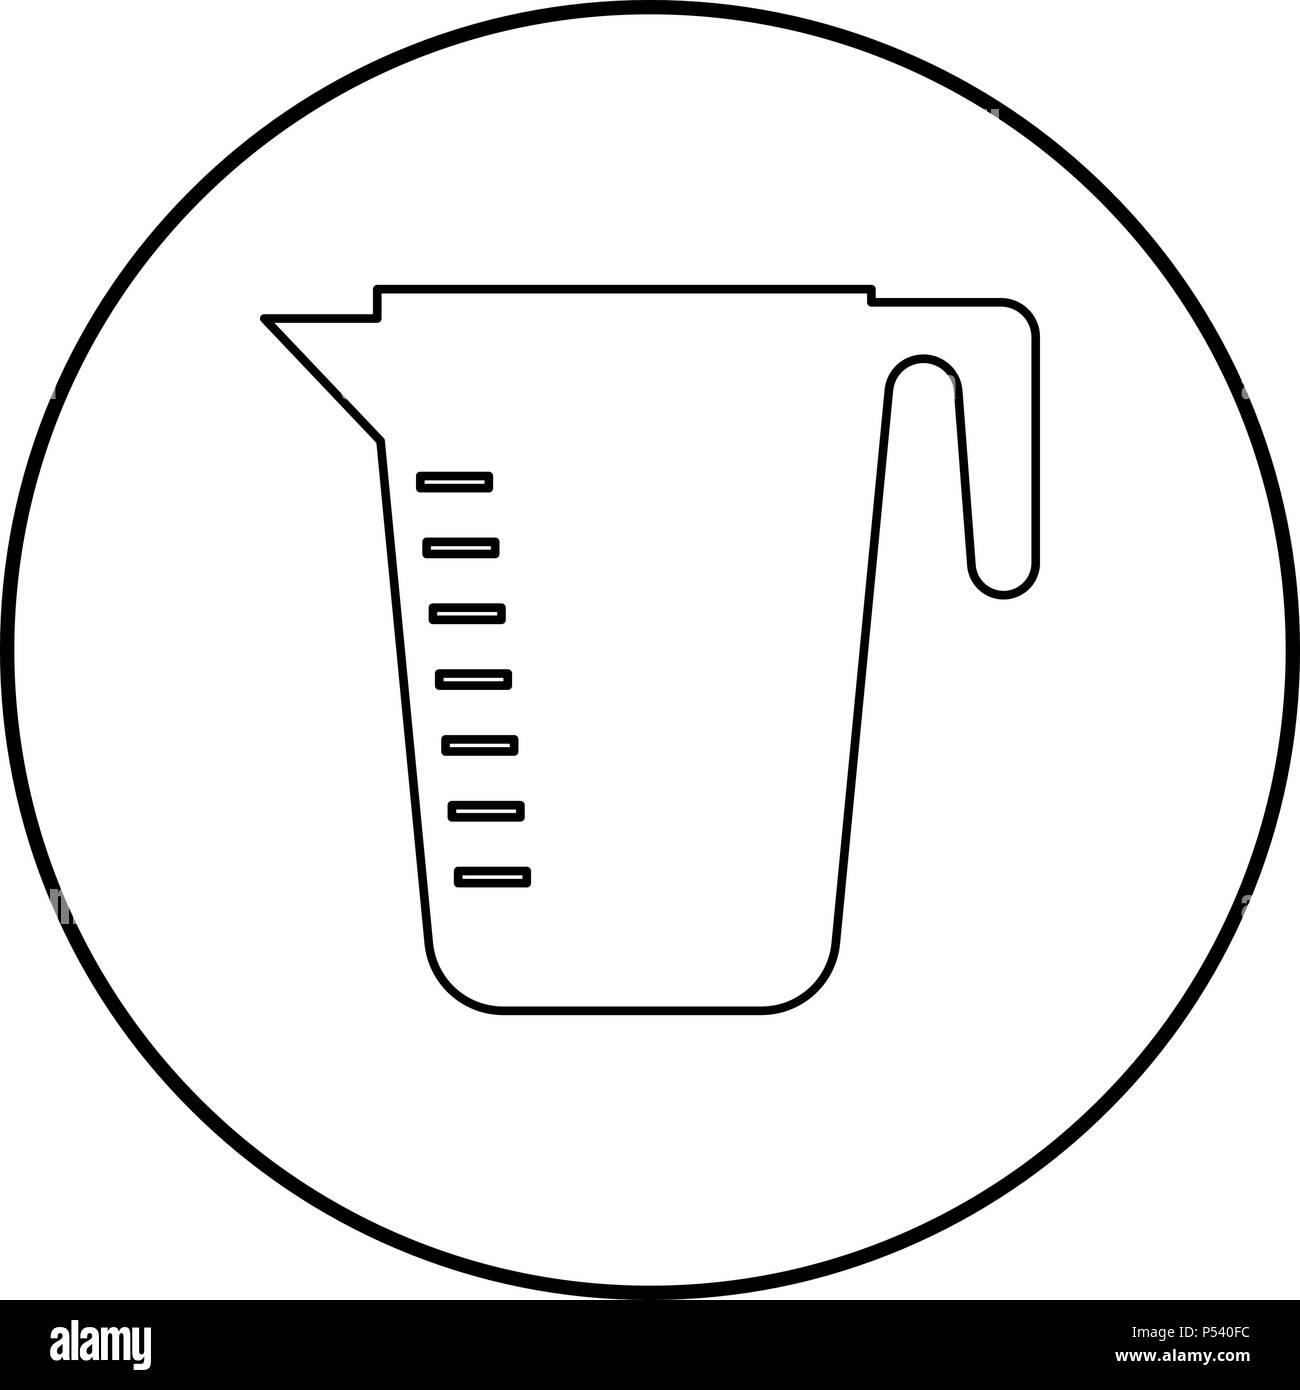 Measuring capacity cup icon black color in circle round outline - Stock Vector